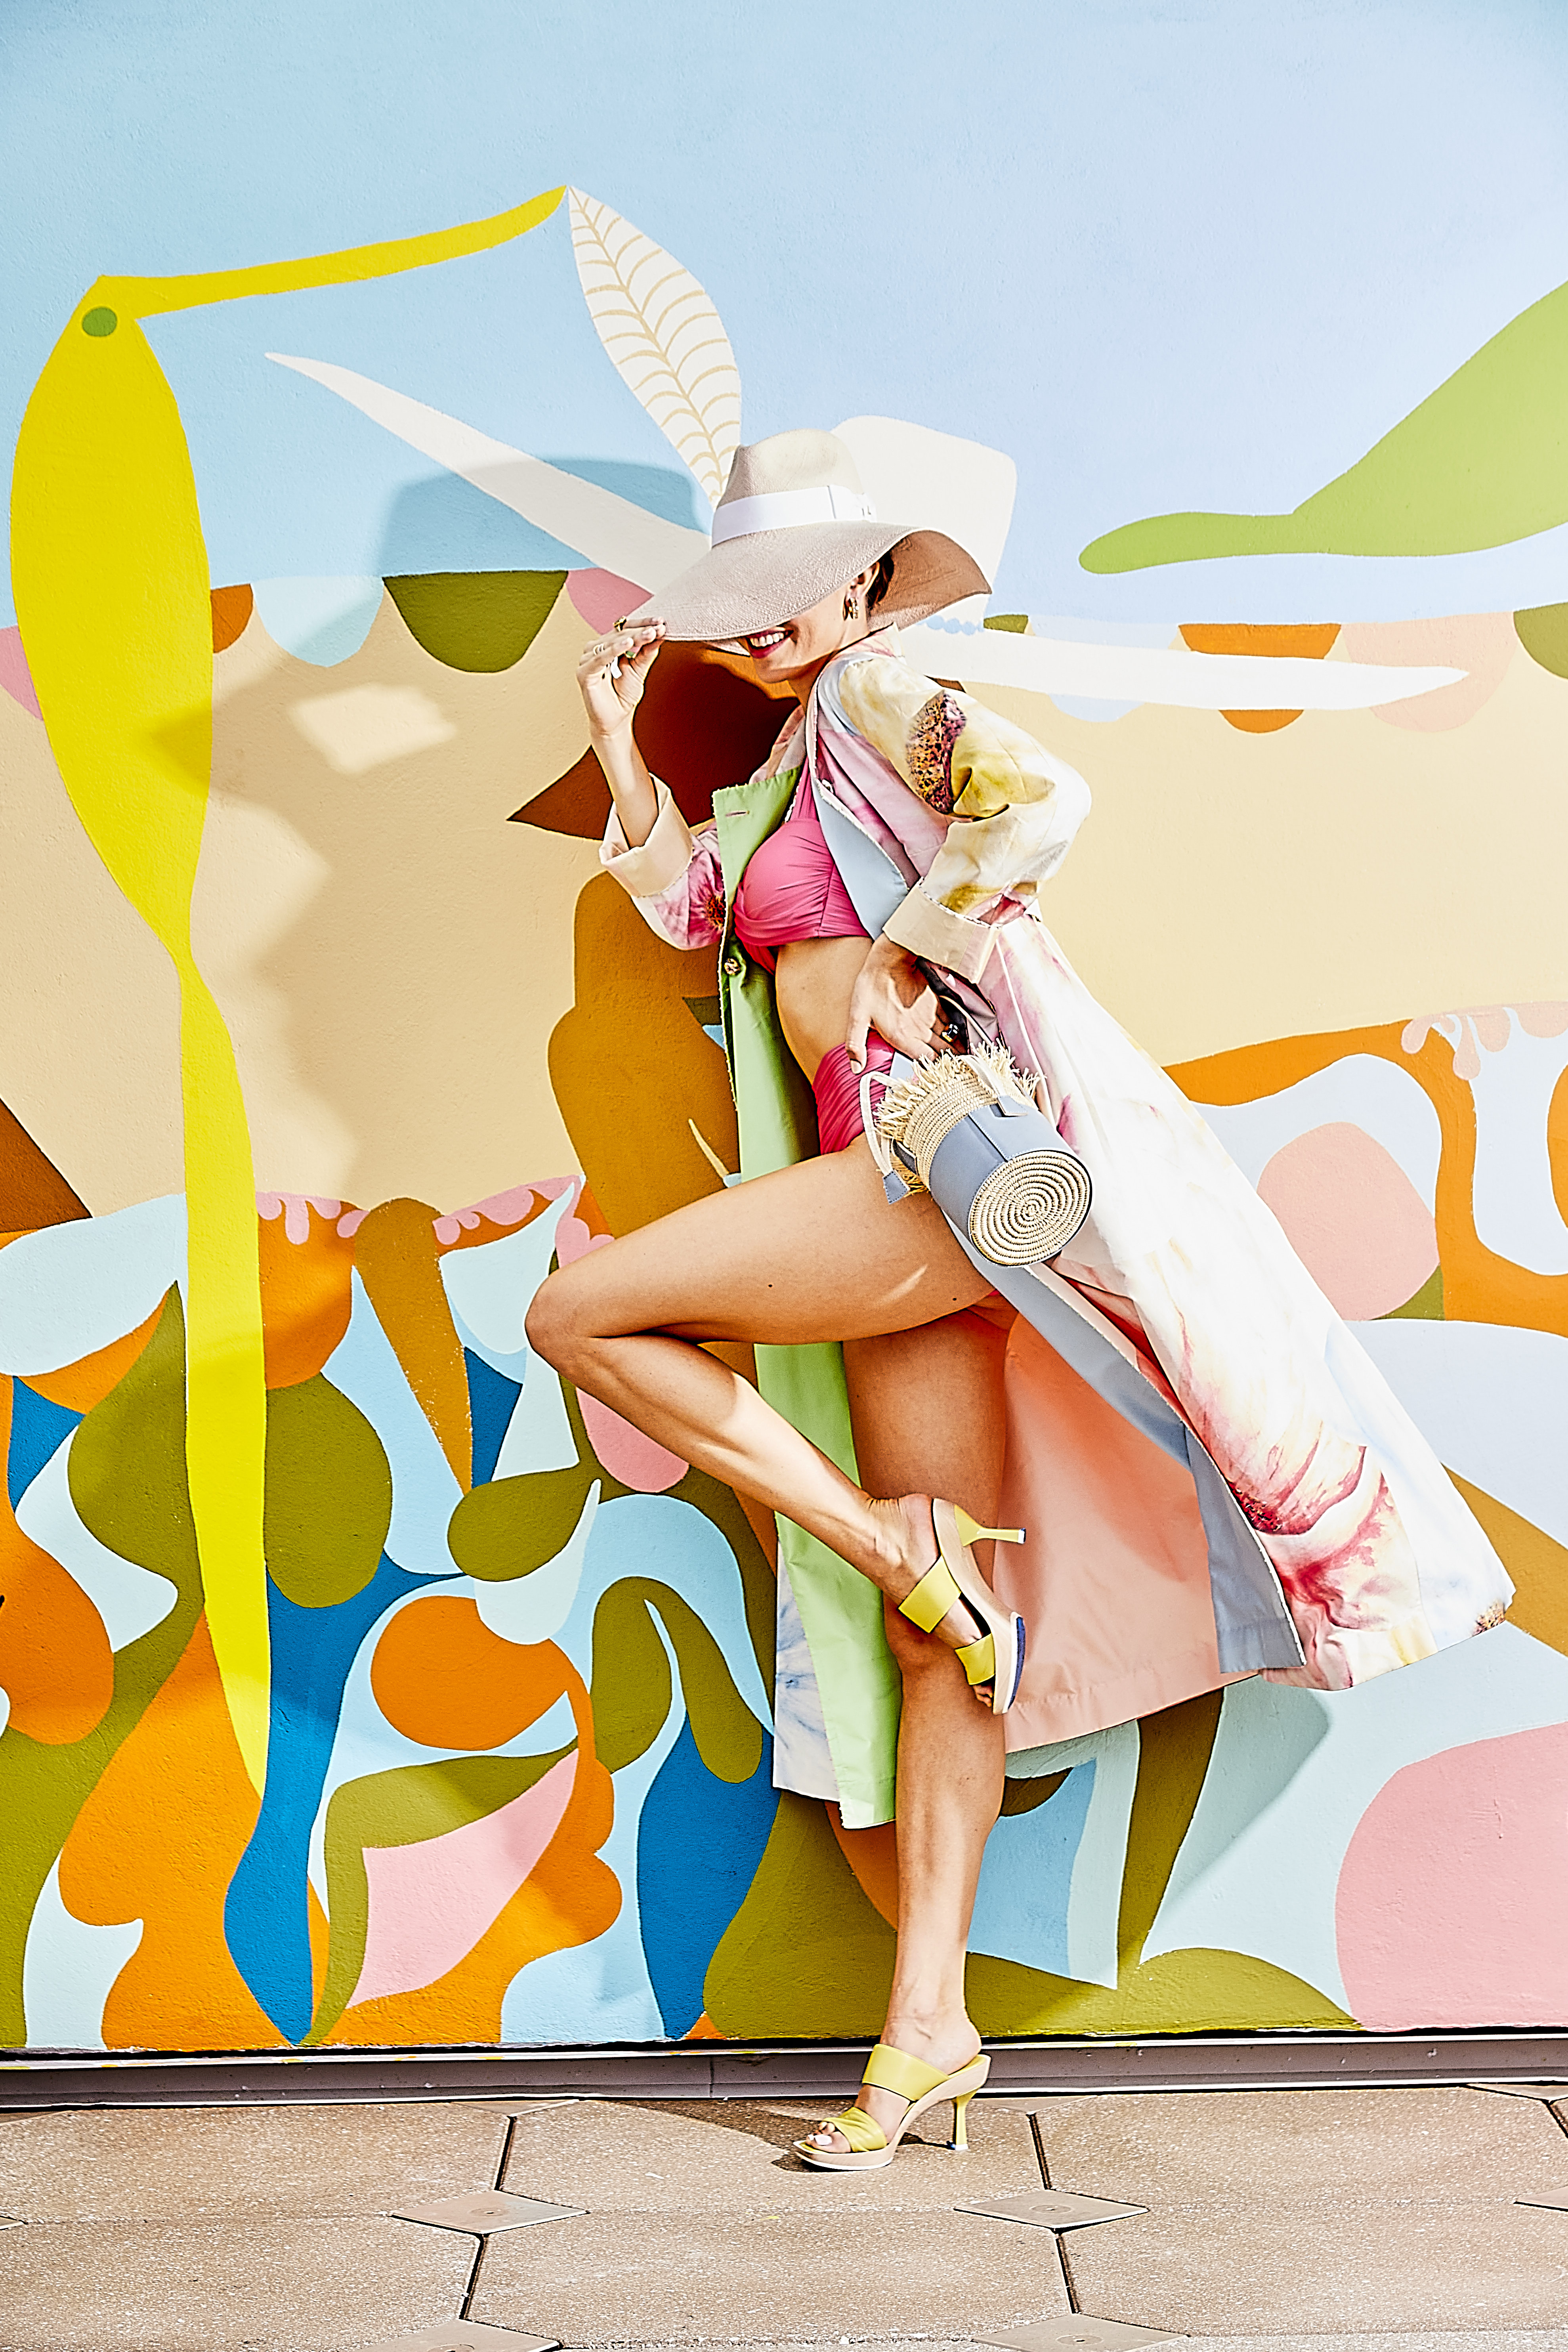 """Bikini Society: Perf reversible coat, $1,950 at RTW; twist-front bandeau, $94, and high-waist bottom, $74, both at Tara Grinna; Lafayette 148 NY """"Icon"""" hat, $398, Chloe sunglasses, $315, and A.G.L. """"Surin"""" heel, $560, all at Gwynn's of Mount Pleasant; Demarson """"Eden"""" cuff earrings, $195 at Showroom at Freshfields Village; David Yurman drop pendant necklace, $2,300, and """"Novella"""" statement ring, $5,500, at REEDS Jewelers in Mount Pleasant Towne Centre; Hearts on Fire with Hayley Paige """"Bring the DRAMA"""" diamond band, $6,950 at Sandler's Diamonds & Time; Christopher Designs 18K gold ring with lemon quartz and diamond accents, $3,940 at Diamonds Direct; and """"The Maroc Collection"""" fringe bucket bag, $228 at Beau & Ro"""